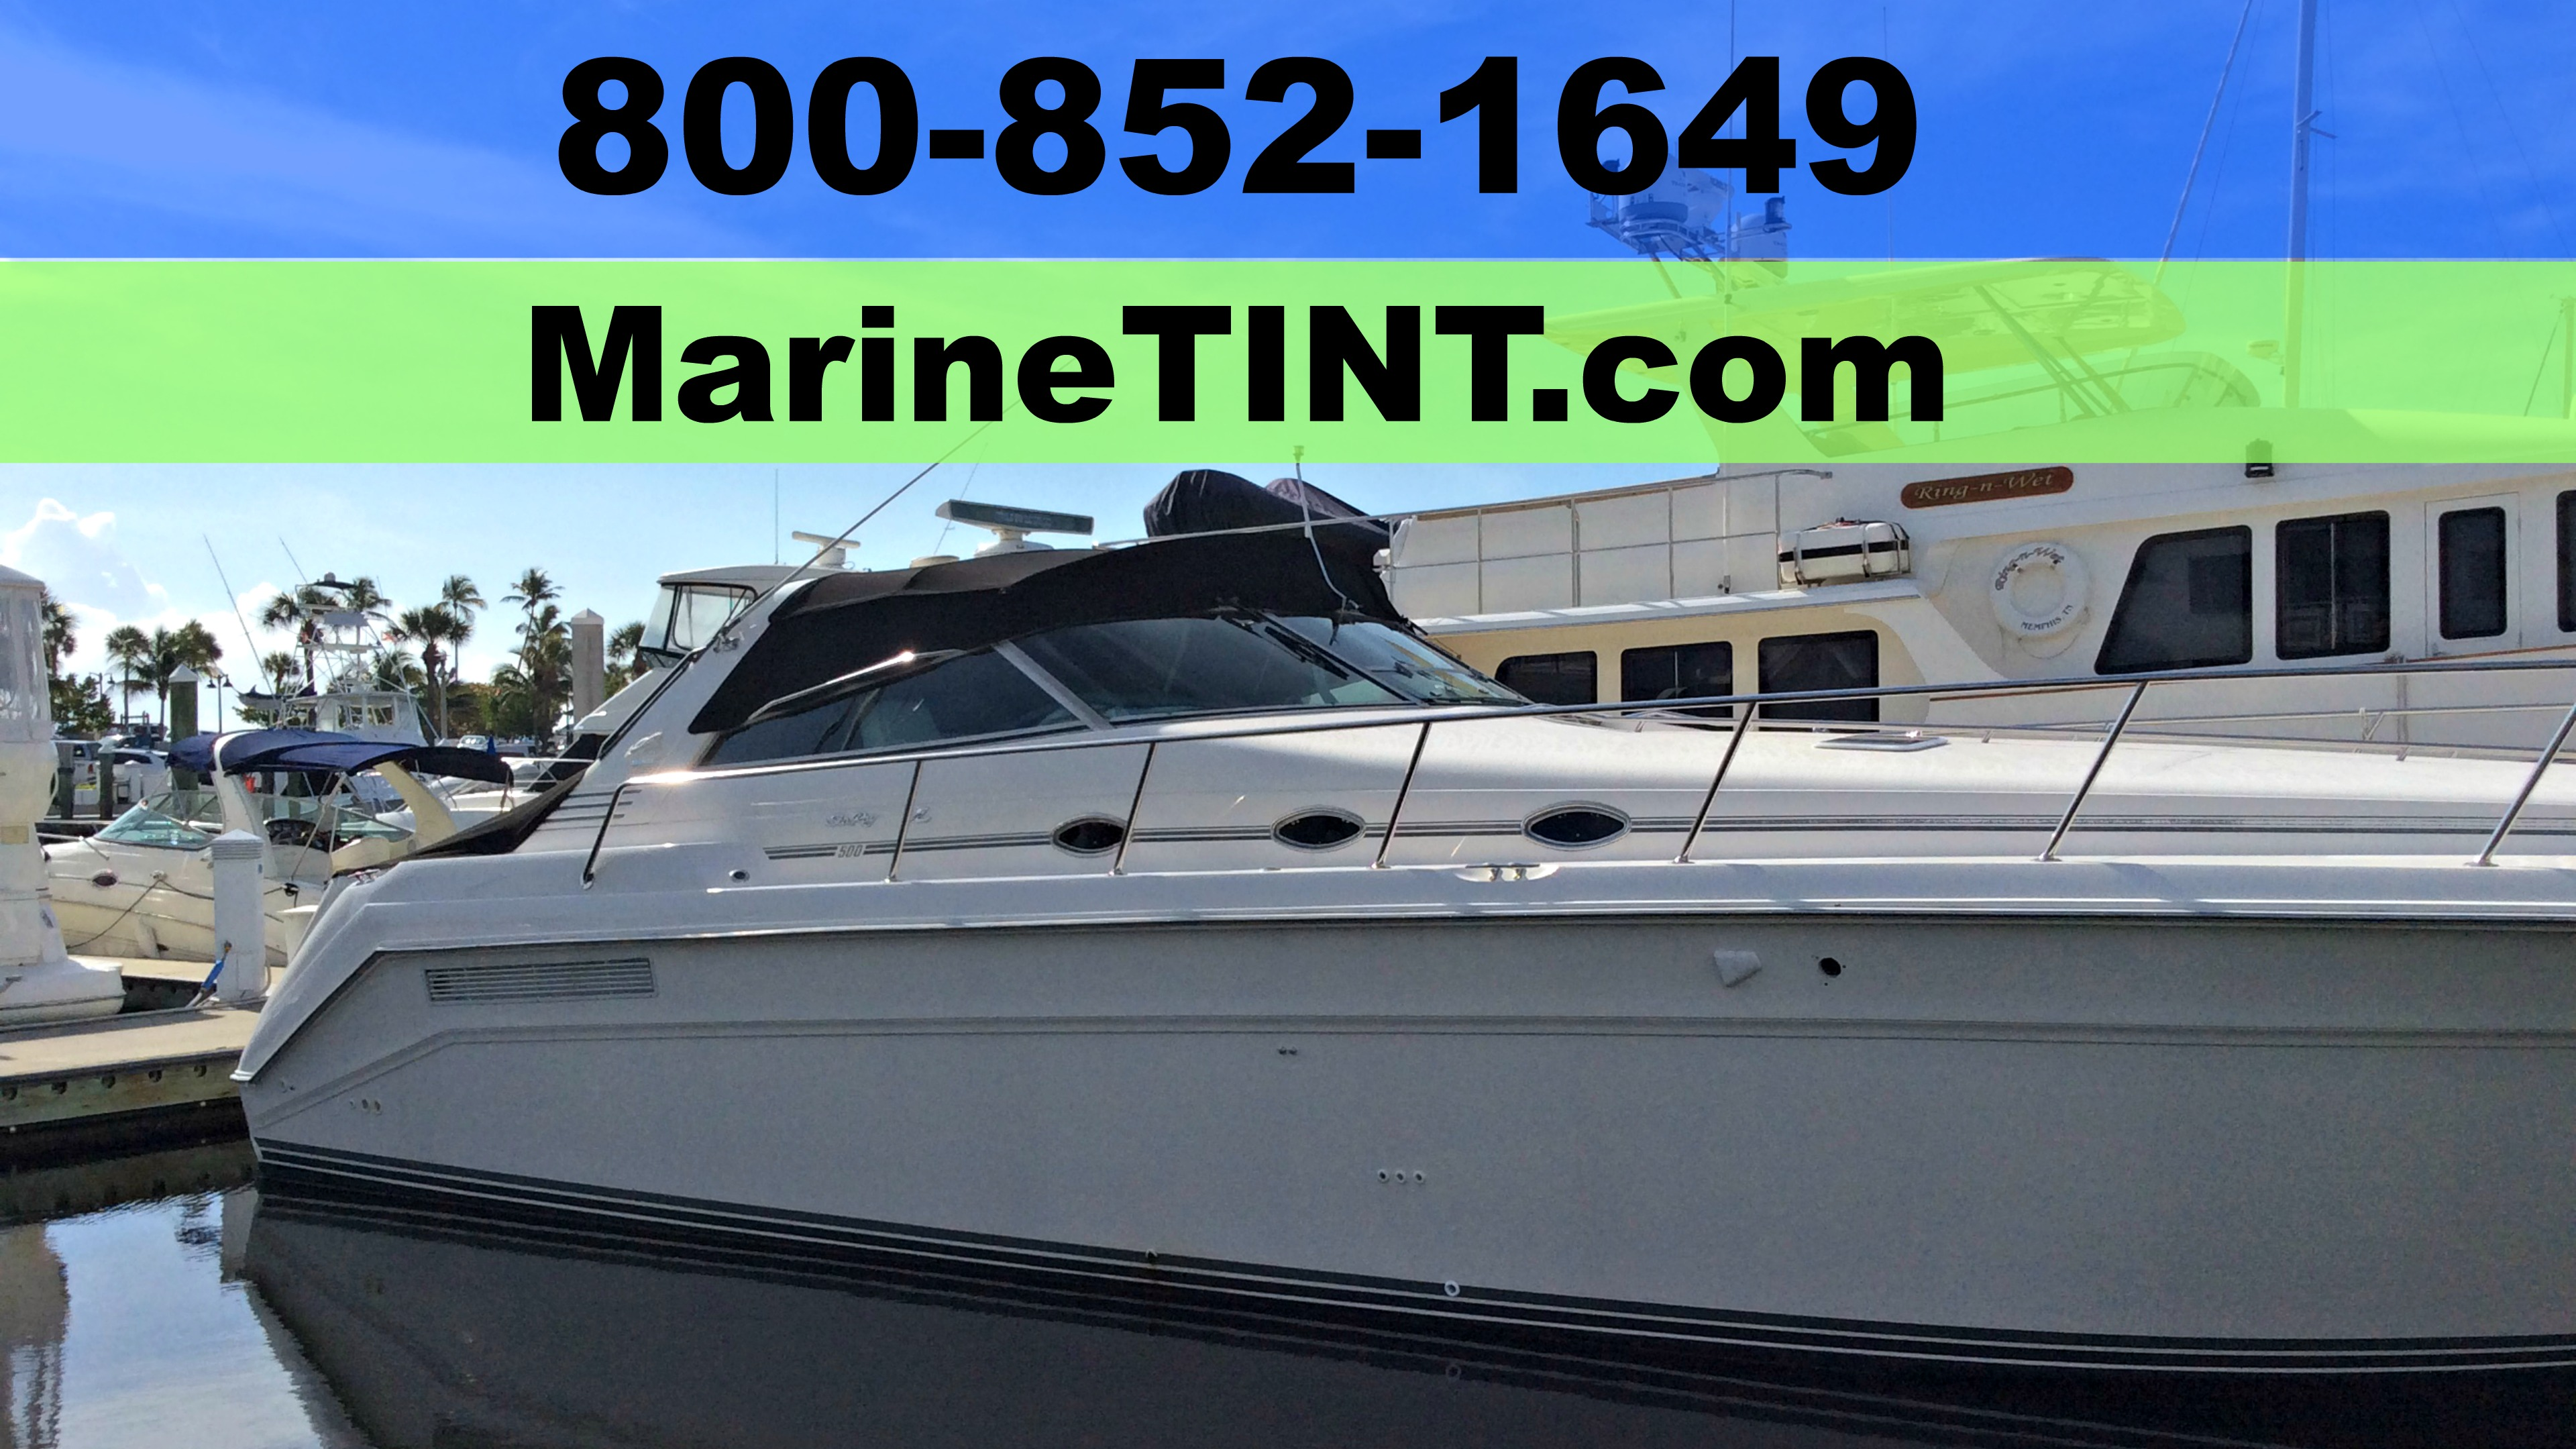 Boat Window Tinting Fort Lauderdale